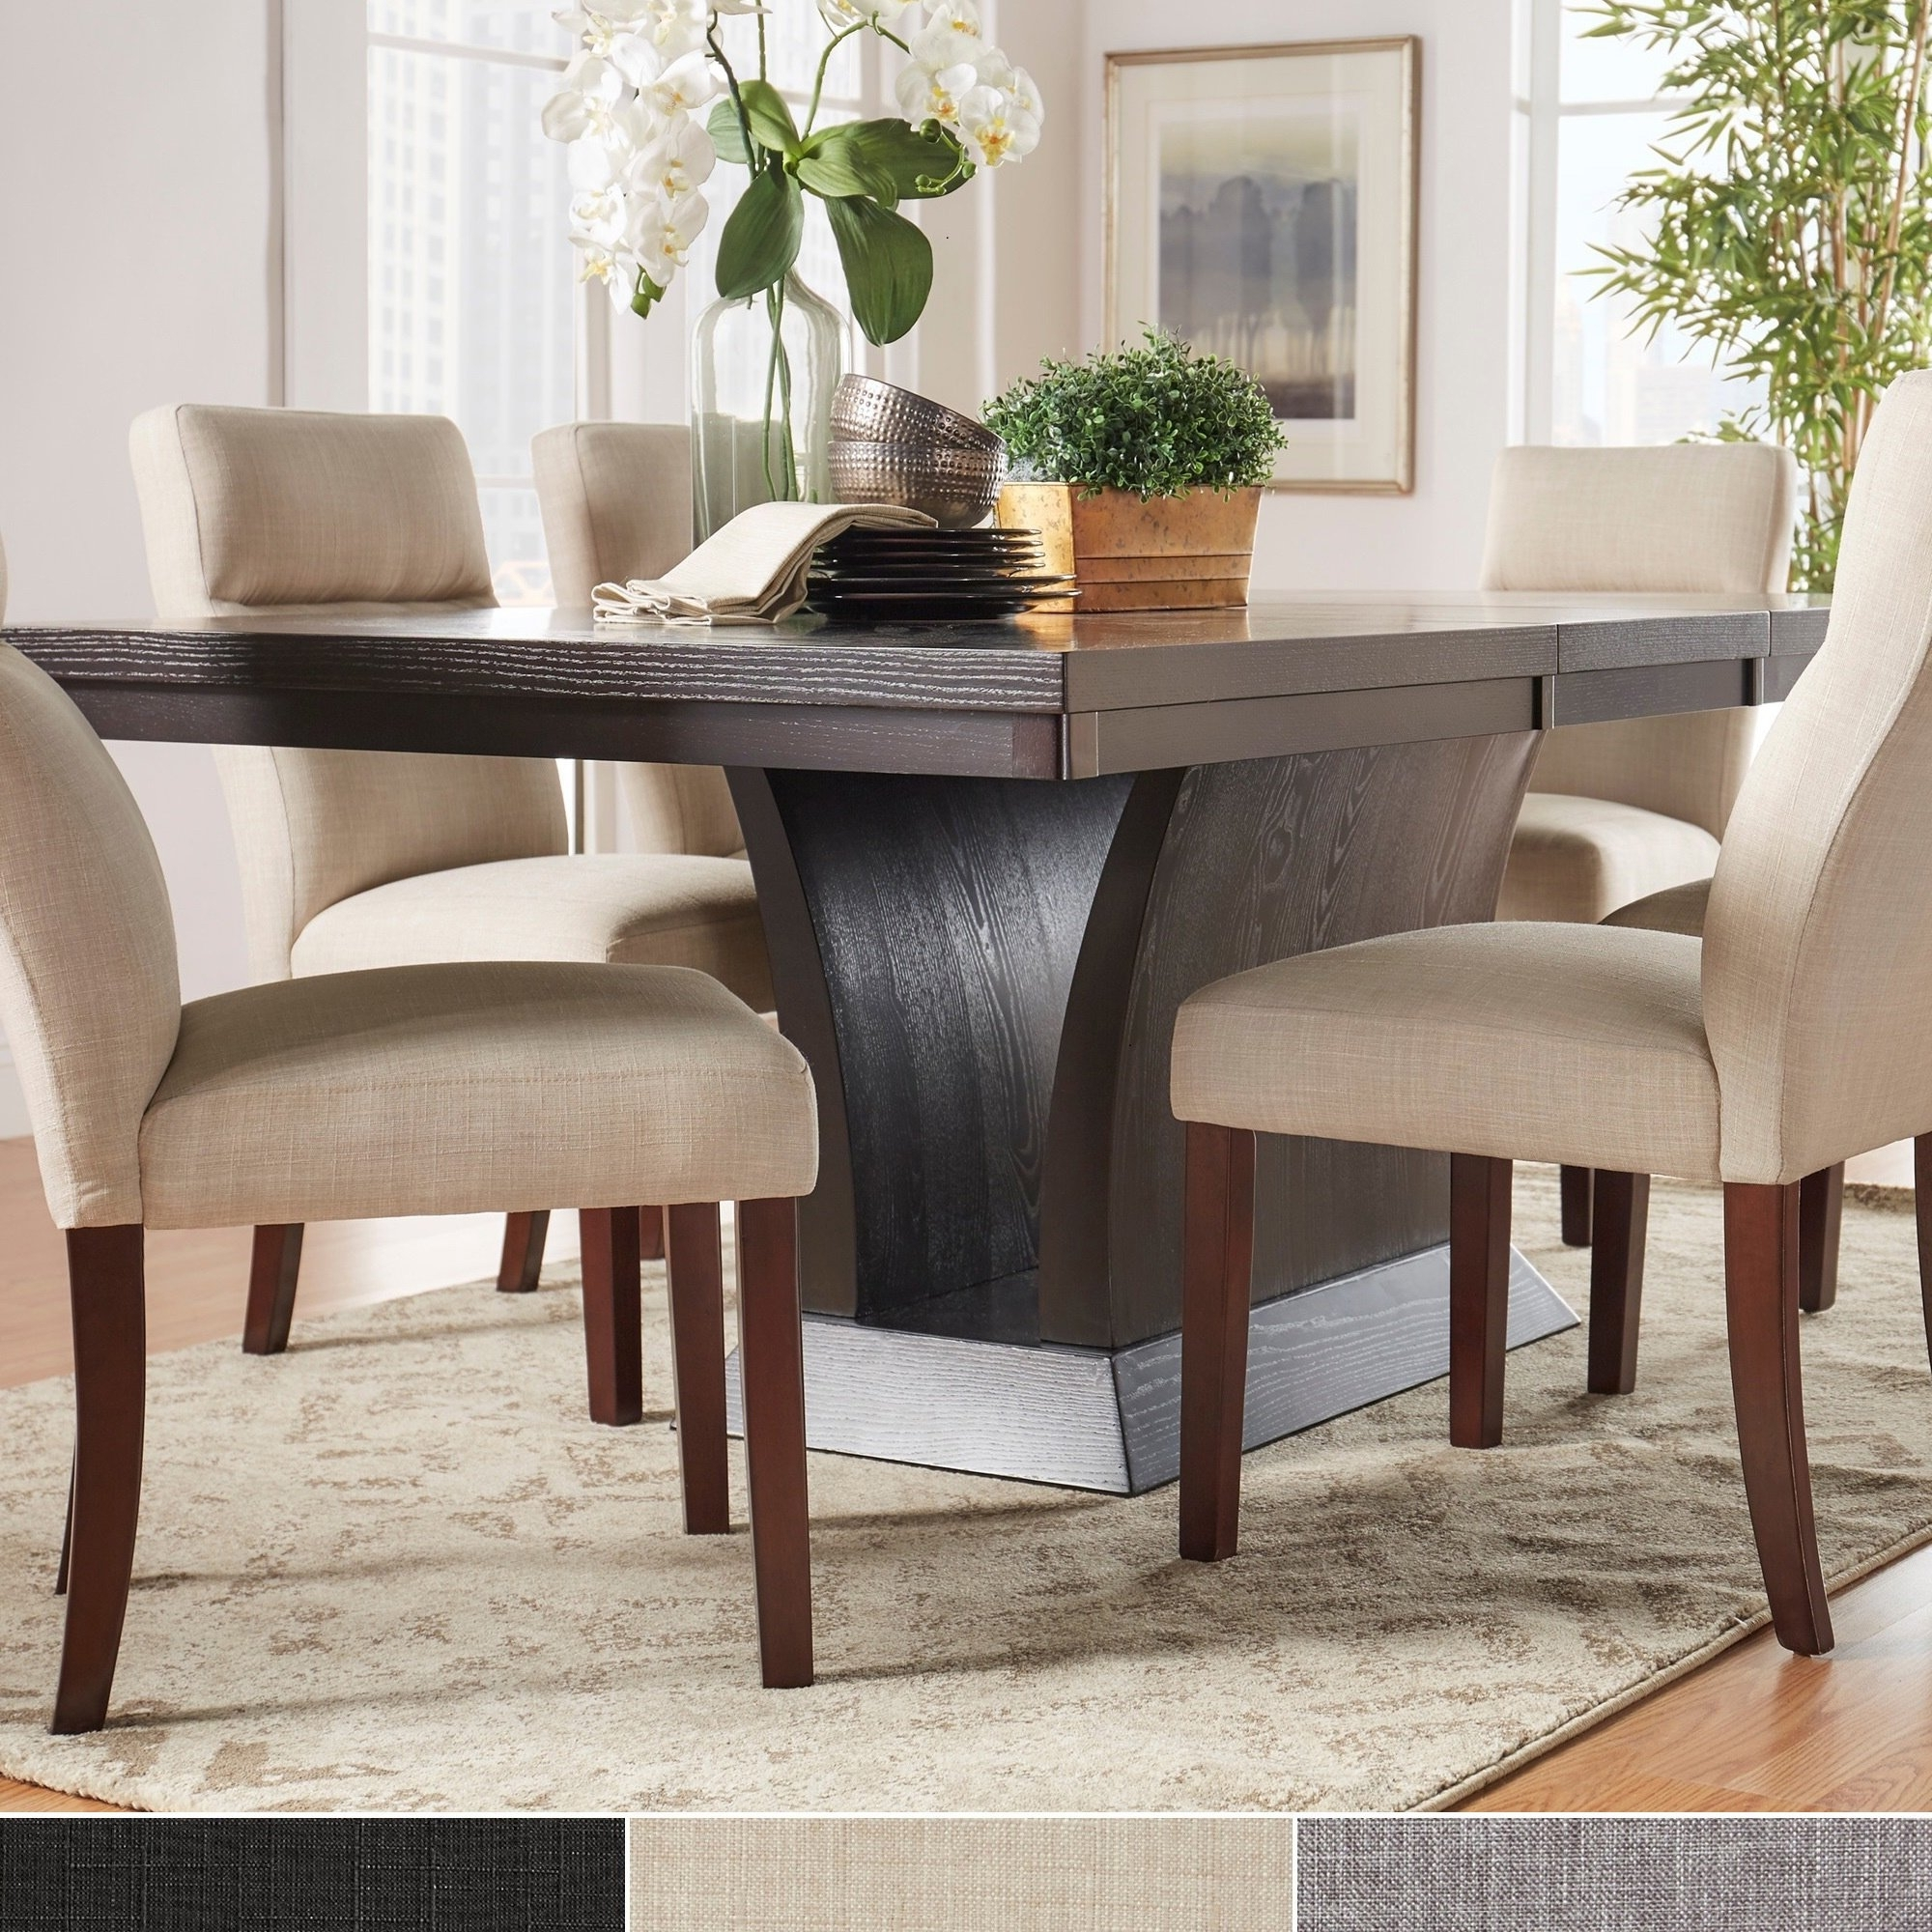 Shop Charles Espresso Contemporary Dining Setinspire Q Modern Intended For Most Up To Date Craftsman 7 Piece Rectangular Extension Dining Sets With Arm & Uph Side Chairs (View 16 of 25)